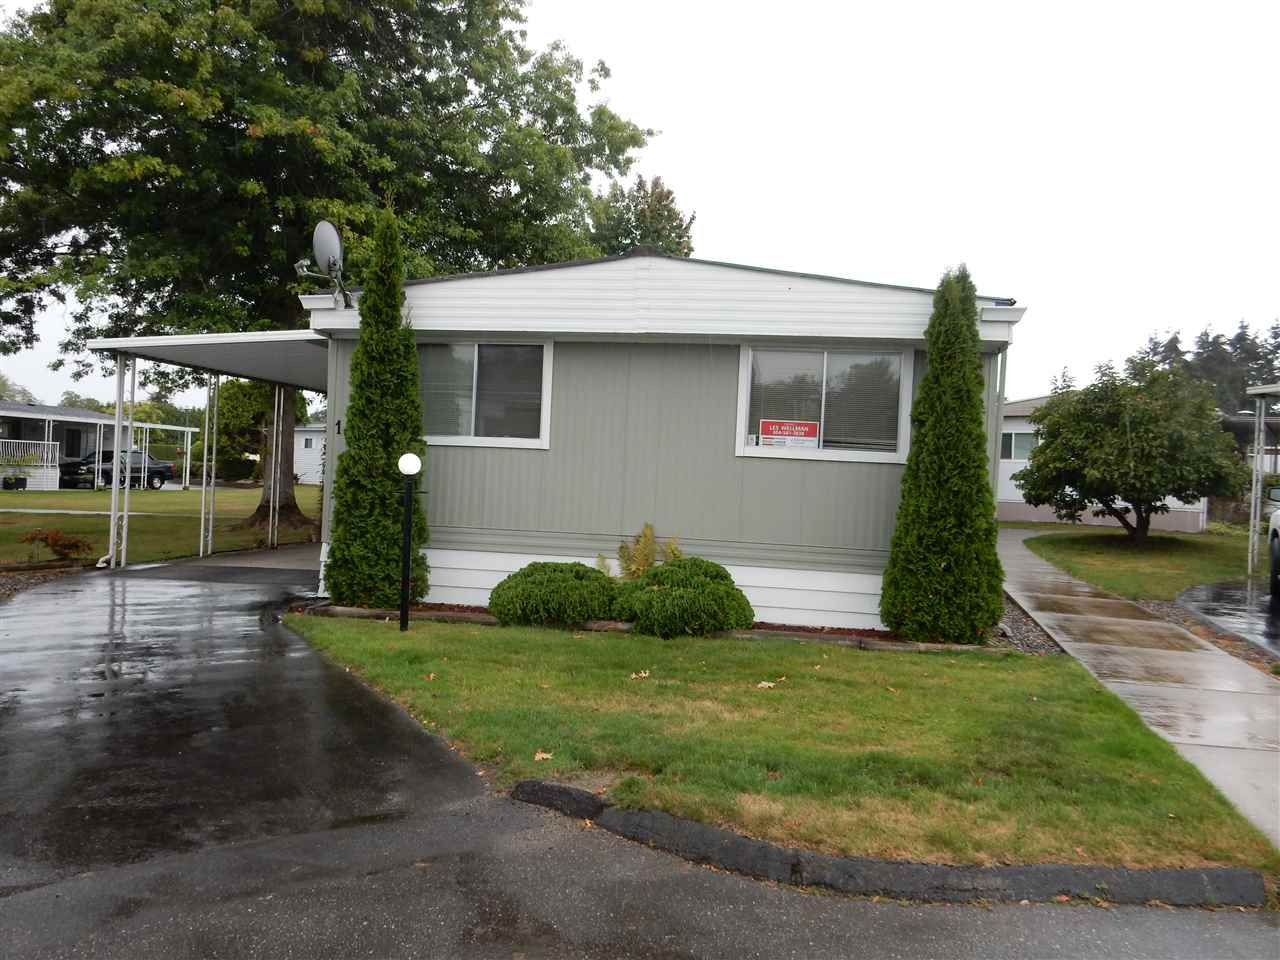 """Main Photo: 156 1840 160 Street in Surrey: King George Corridor Manufactured Home for sale in """"BREAKAWAY BAY"""" (South Surrey White Rock)  : MLS®# R2107144"""